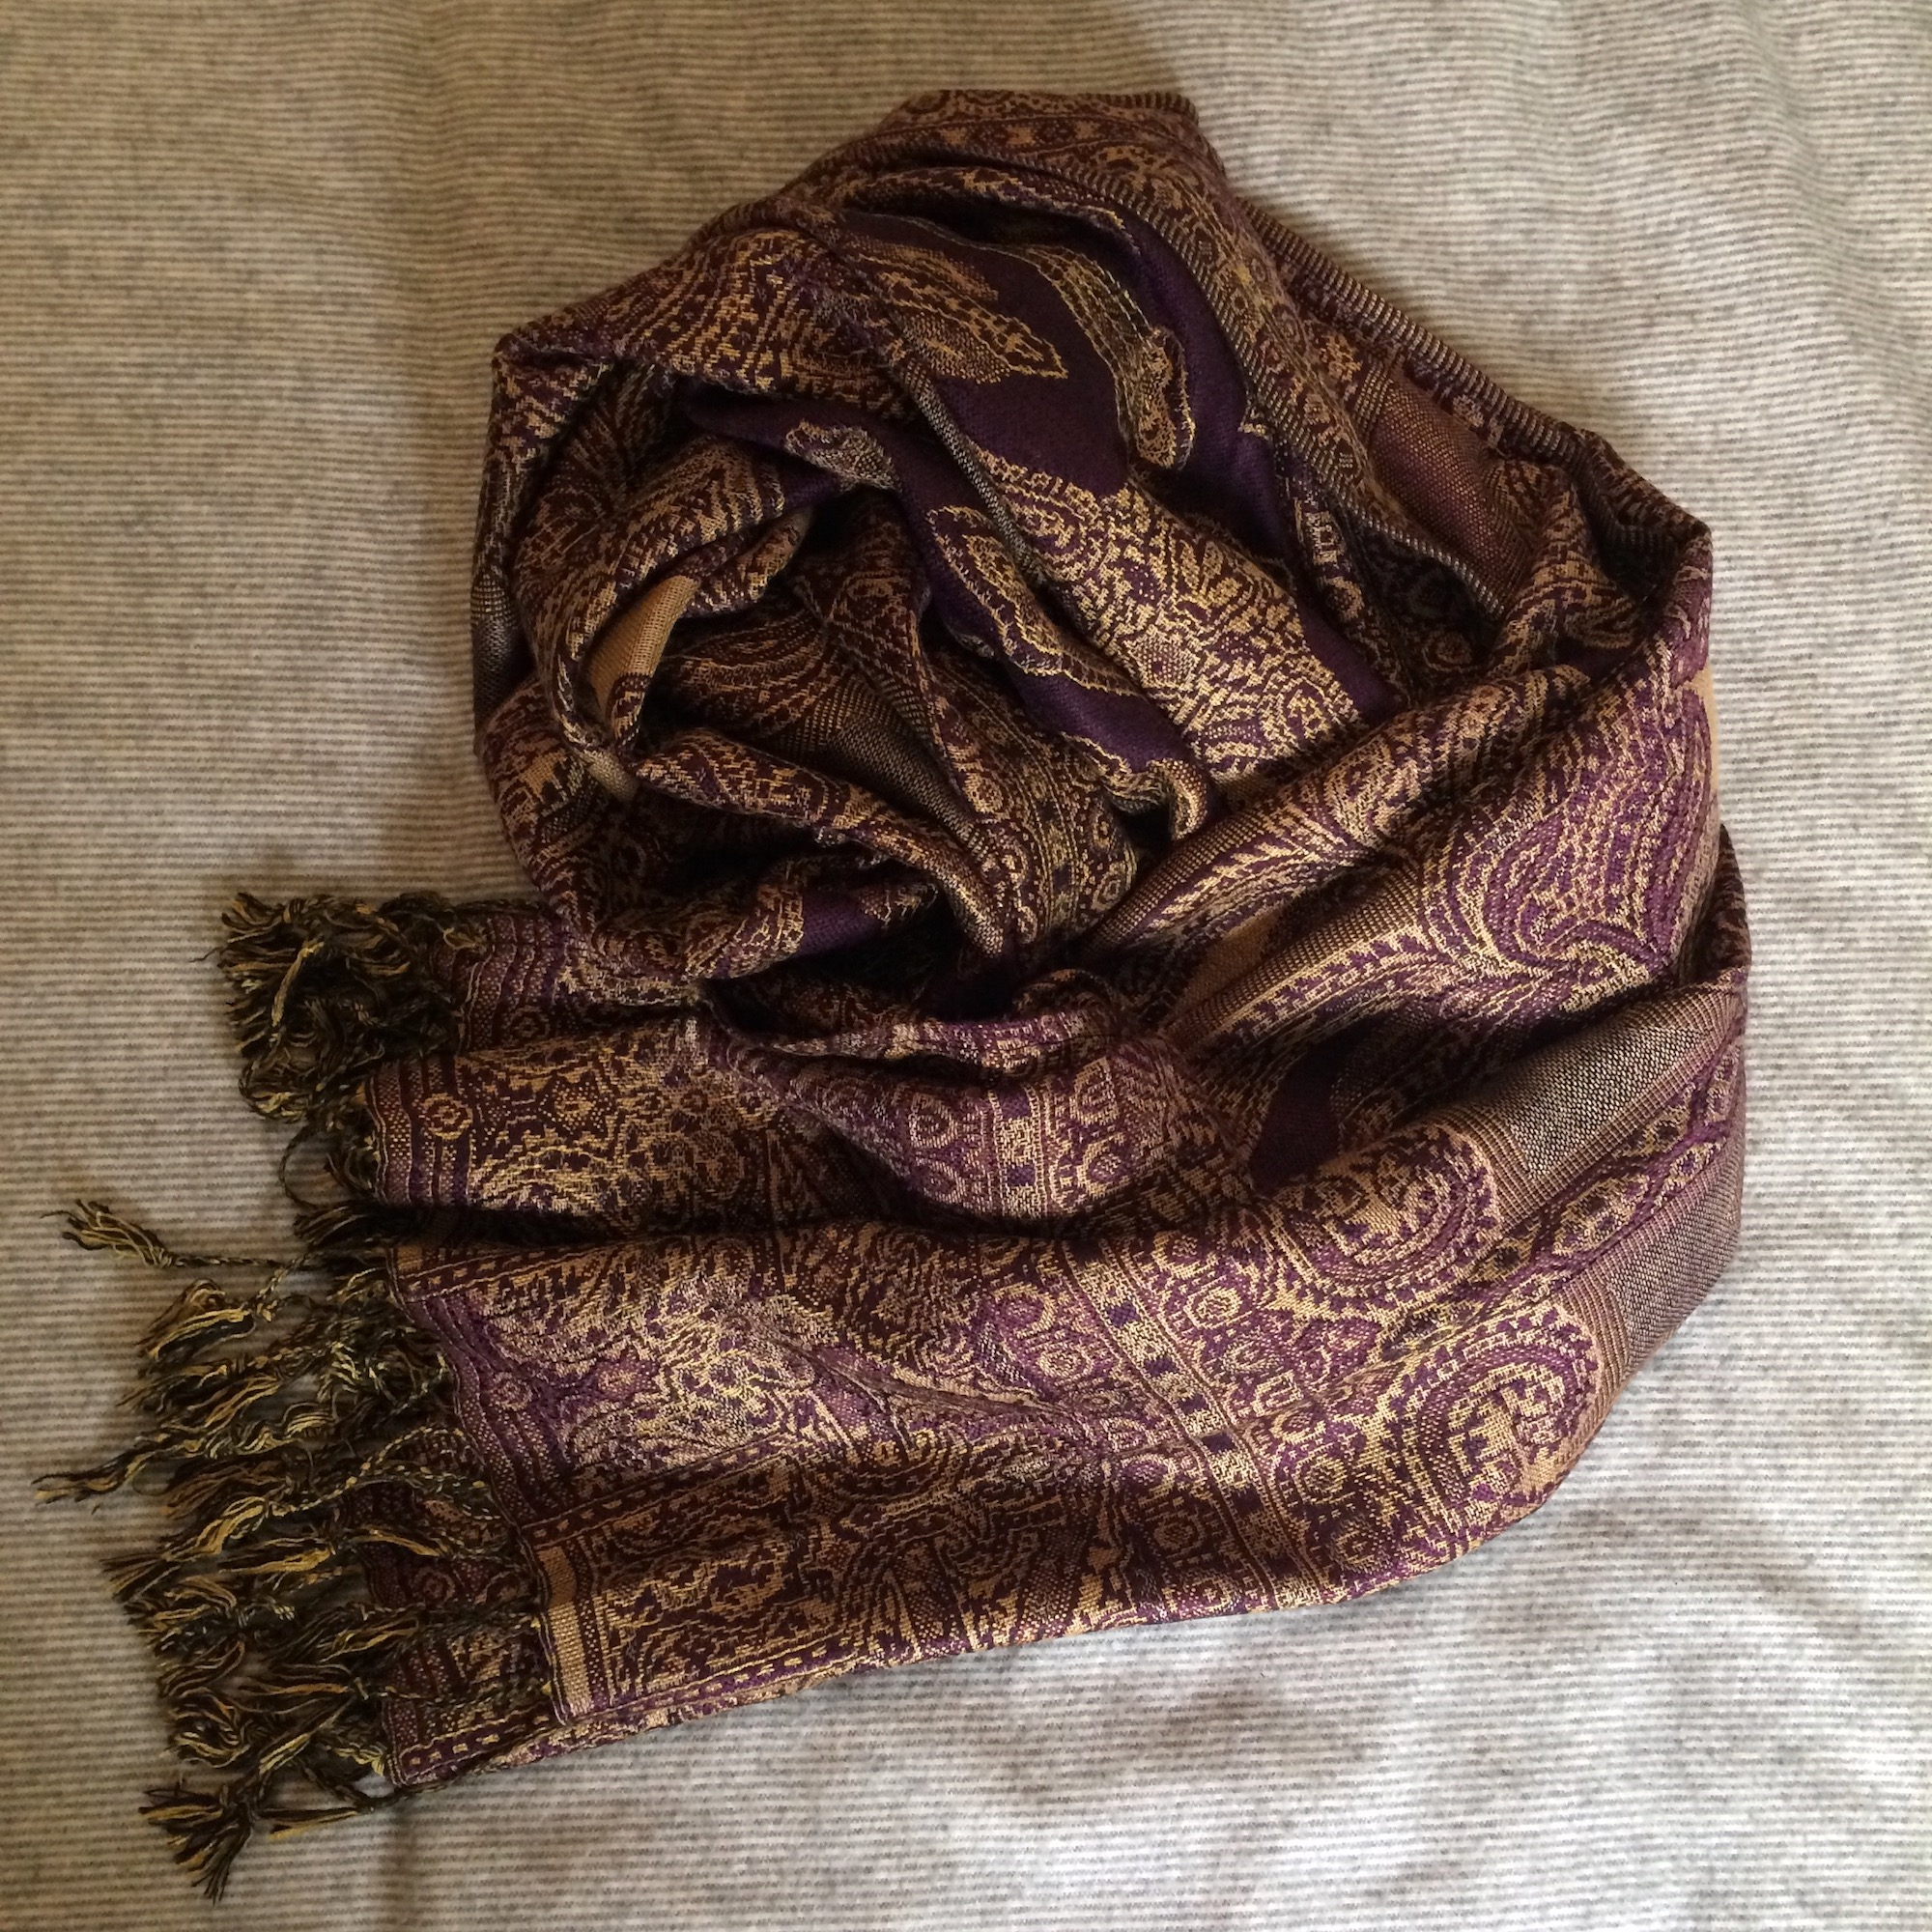 Soft Paisley Pashmina Scarf in Deep Purple & Gold